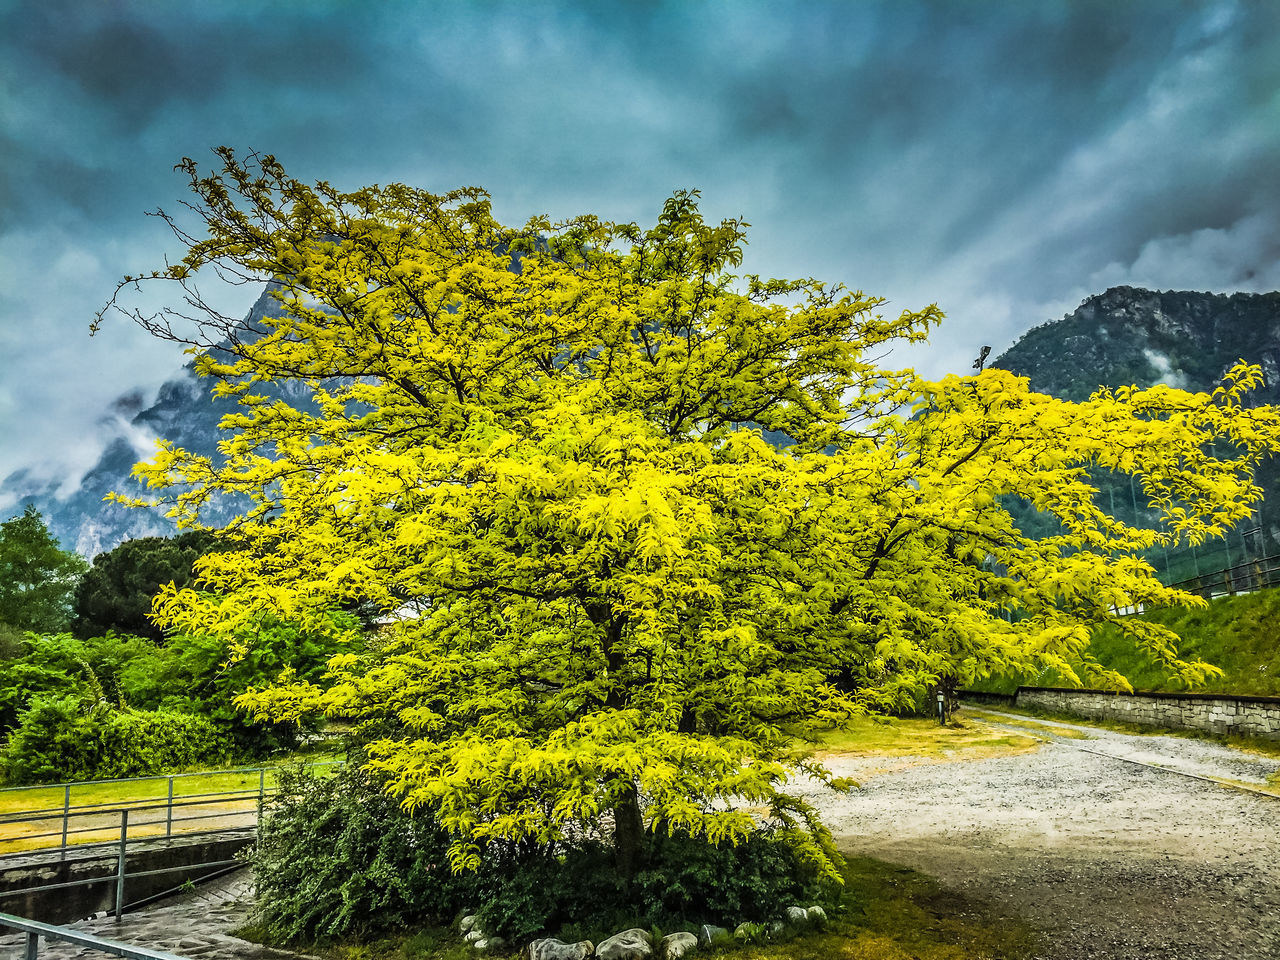 tree, yellow, sky, cloud - sky, nature, growth, day, outdoors, beauty in nature, no people, green color, scenics, plant